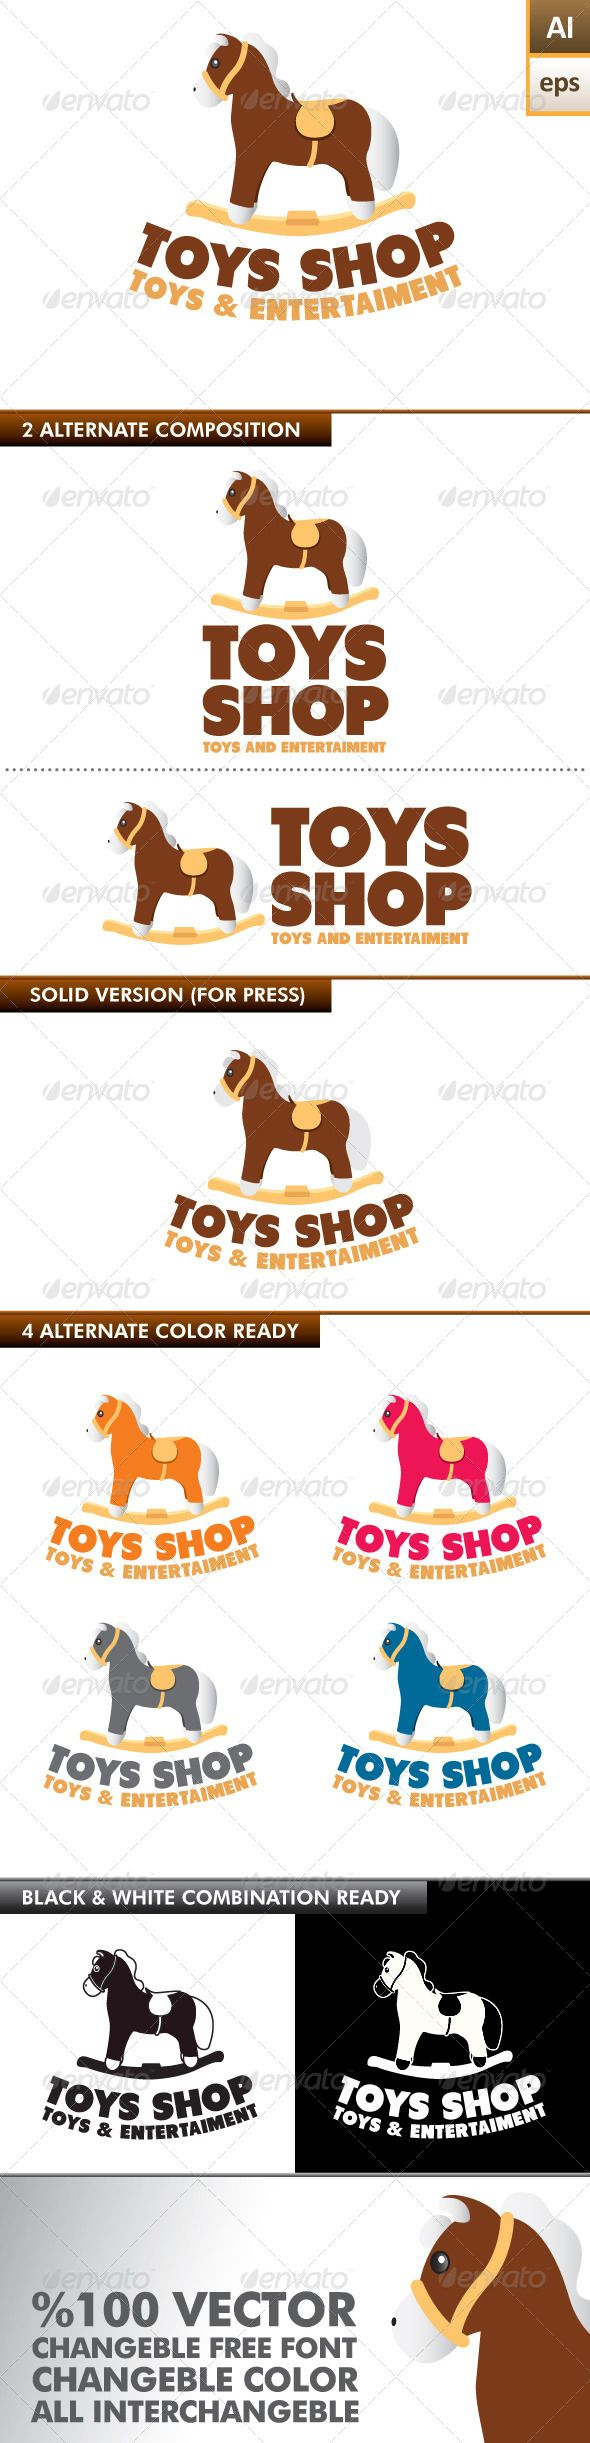 Huslermagazine Good best 25+ toys logo ideas on pinterest | fashion labels, packaging